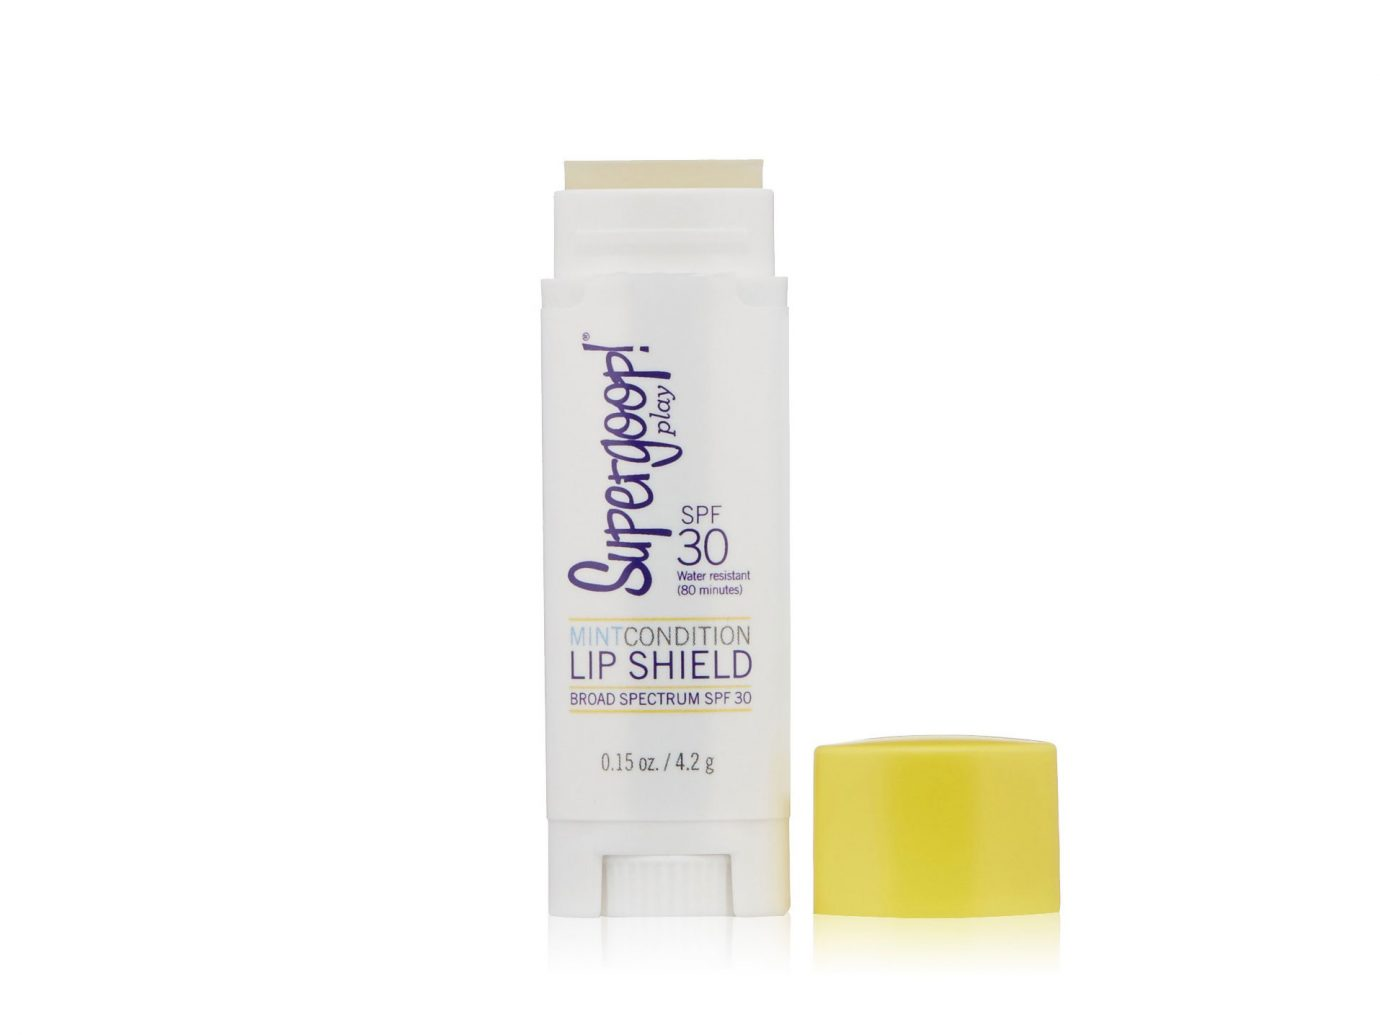 Supergoop! Mint Condition Lip Shield SPF 30